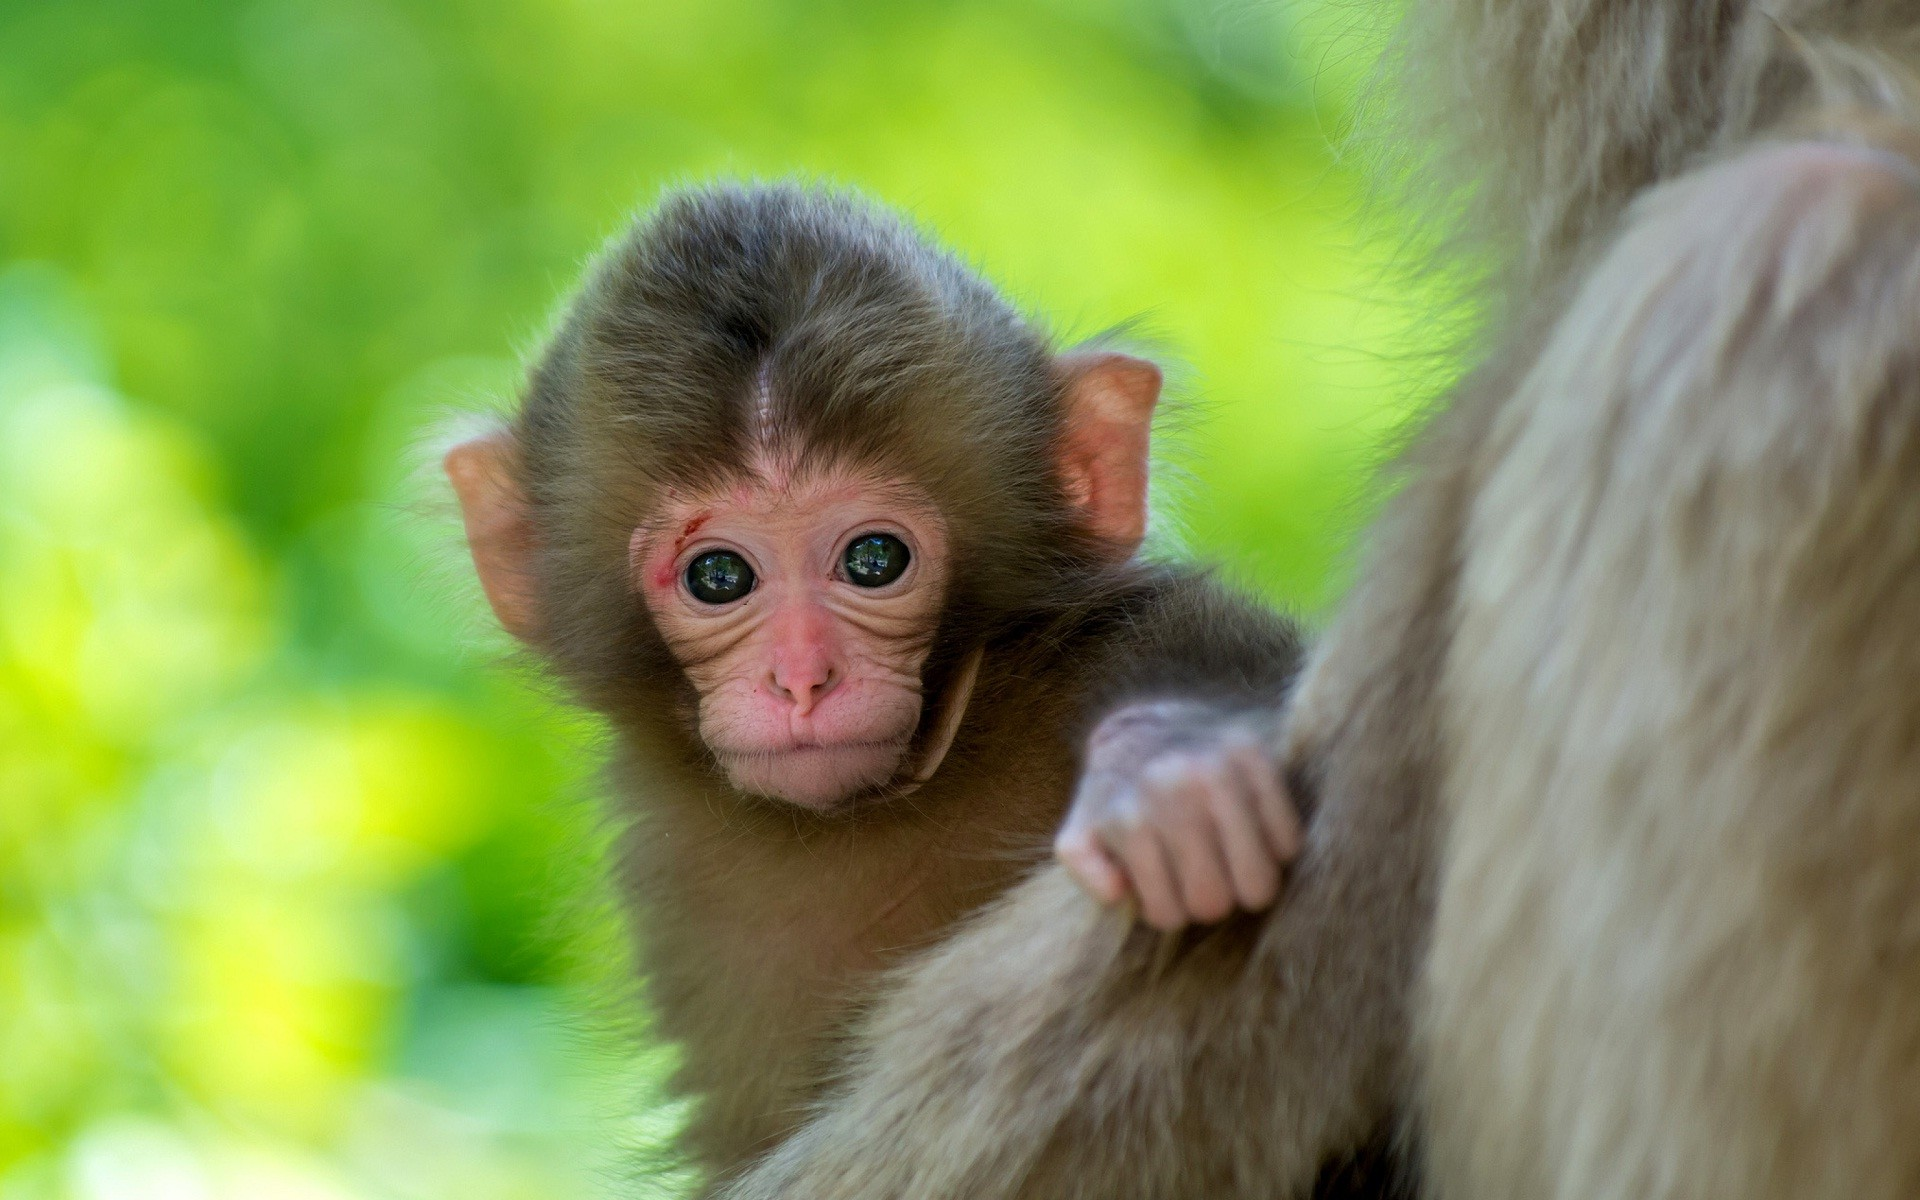 1920x1200 Cute monkey baby animal wallpaper